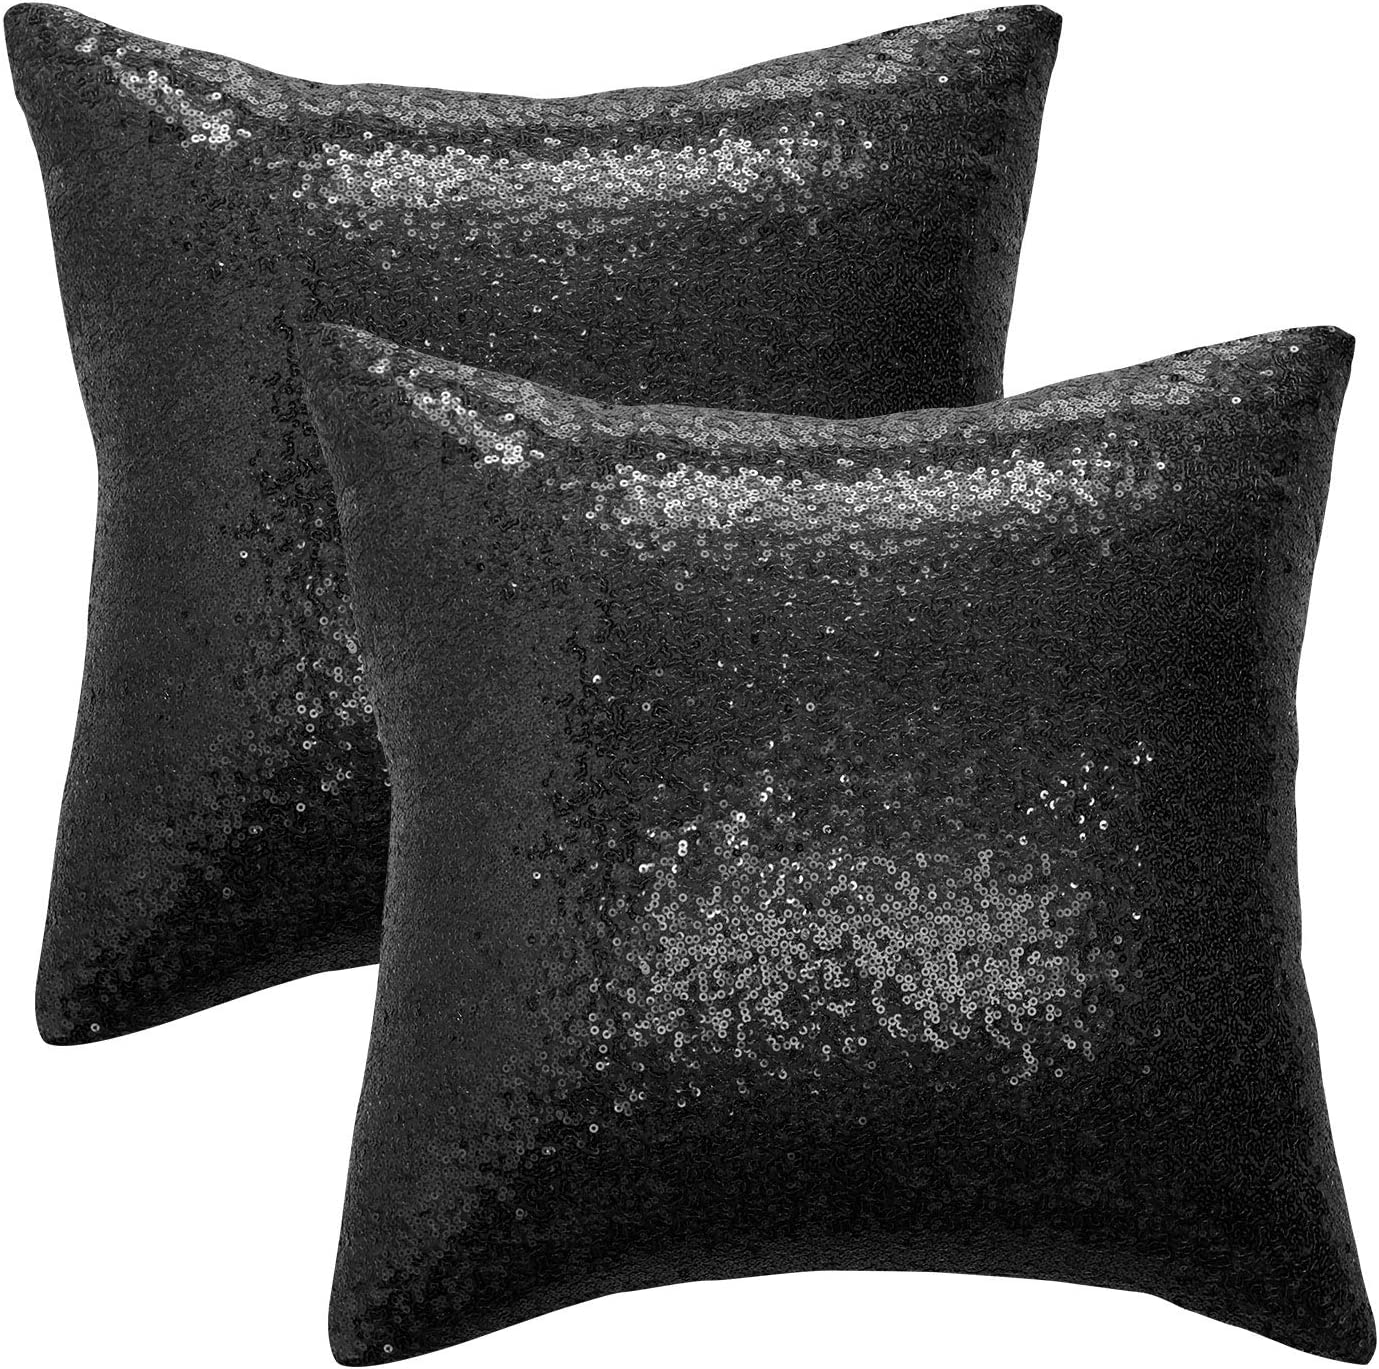 Homonkey Pack of 2, Sequin Throw Pillow Covers, Shiny Sparkling Comfy Satin Cushion Covers, Decorative Cushion Covers for Home Decor/Christmas/Party, 16 x 16 Inch, Black